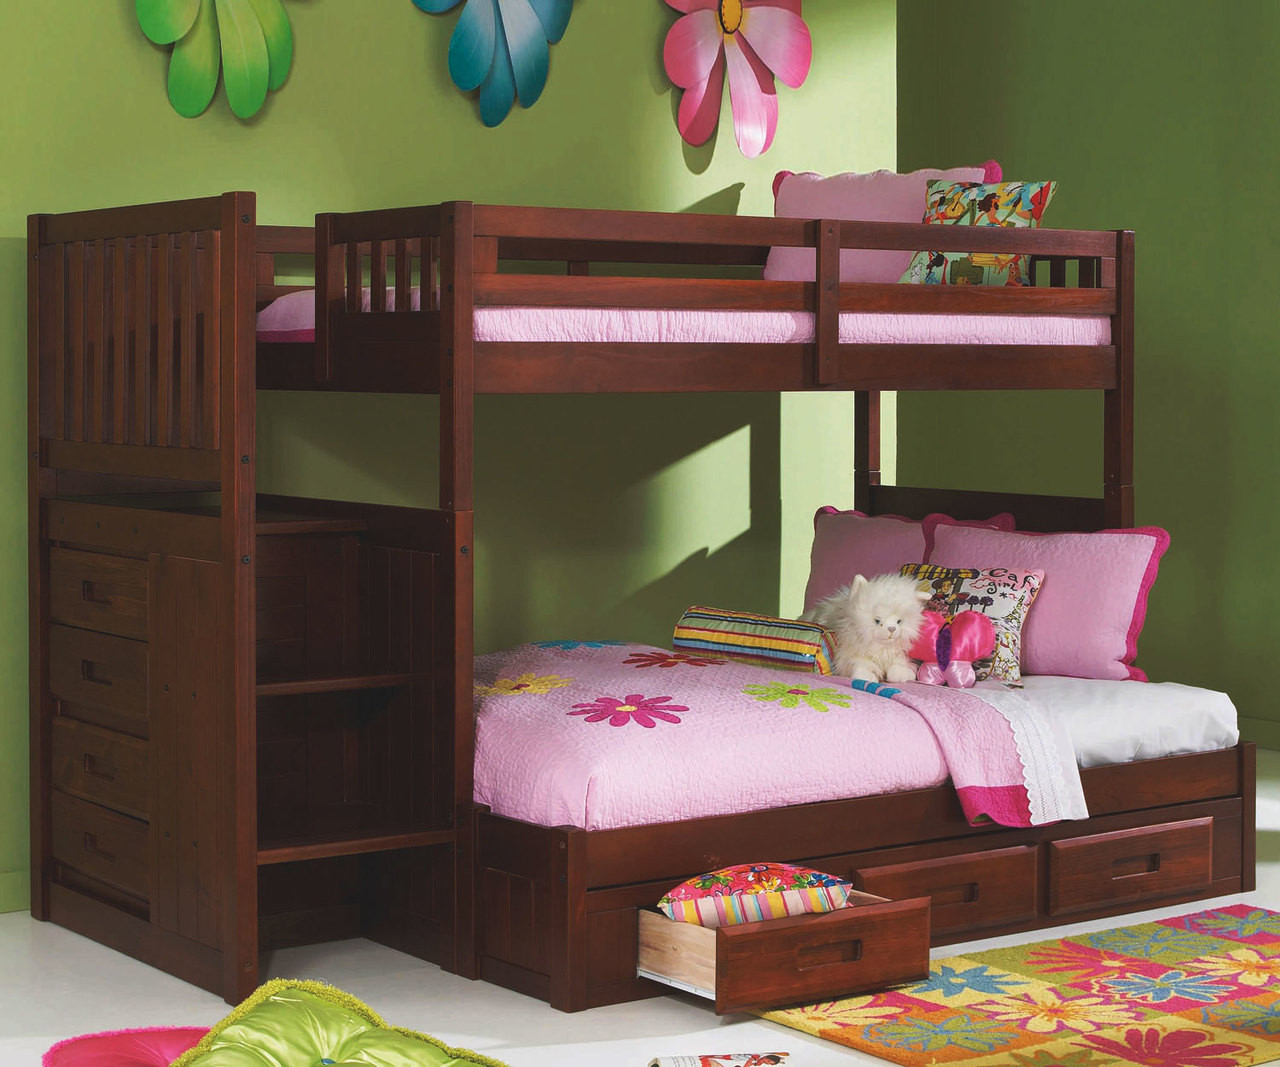 Bed Over Stair Box With Storage And Stairs: Merlot Finish Mission Stairstepper Bunk Bed At Kids